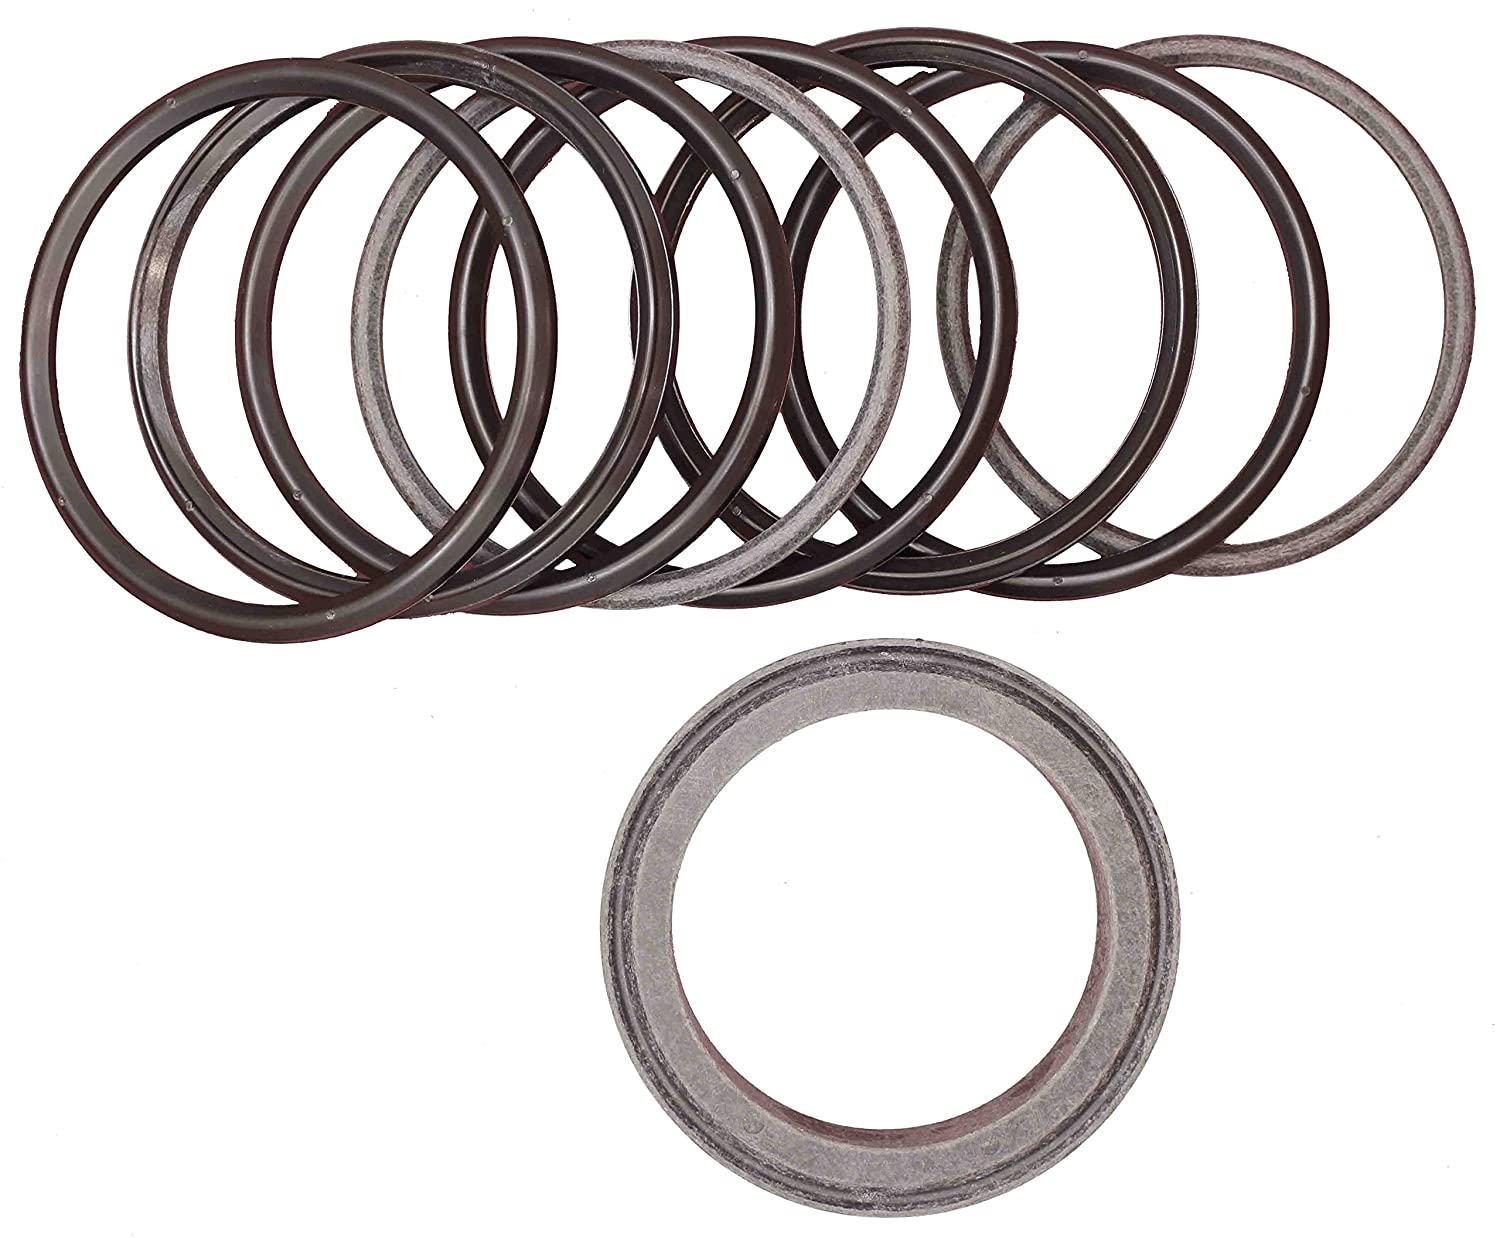 CASE G33239 HYDRAULIC CYLINDER SEAL KIT (PACKING ASSEMBLY) TORNADO HEAVY EQUIPMENT PARTS